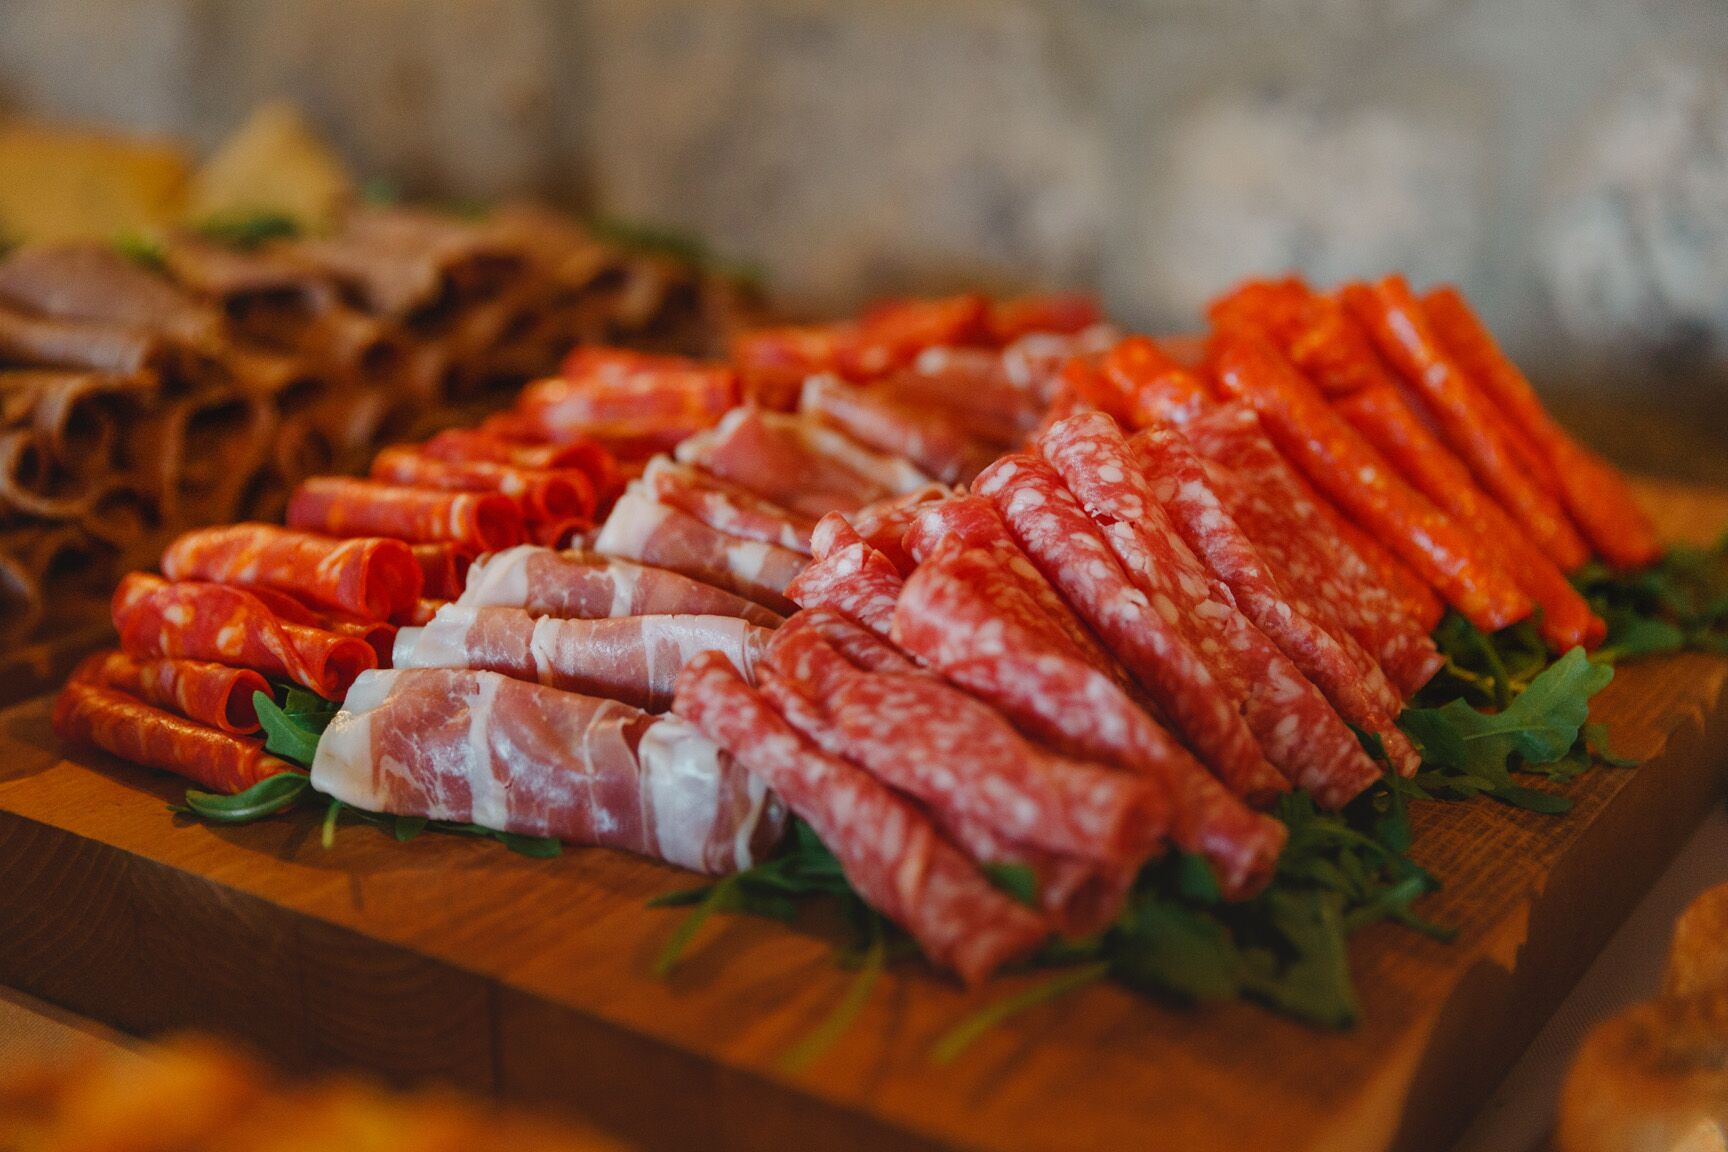 cold meats on wooden servig board wedding evening food ideas